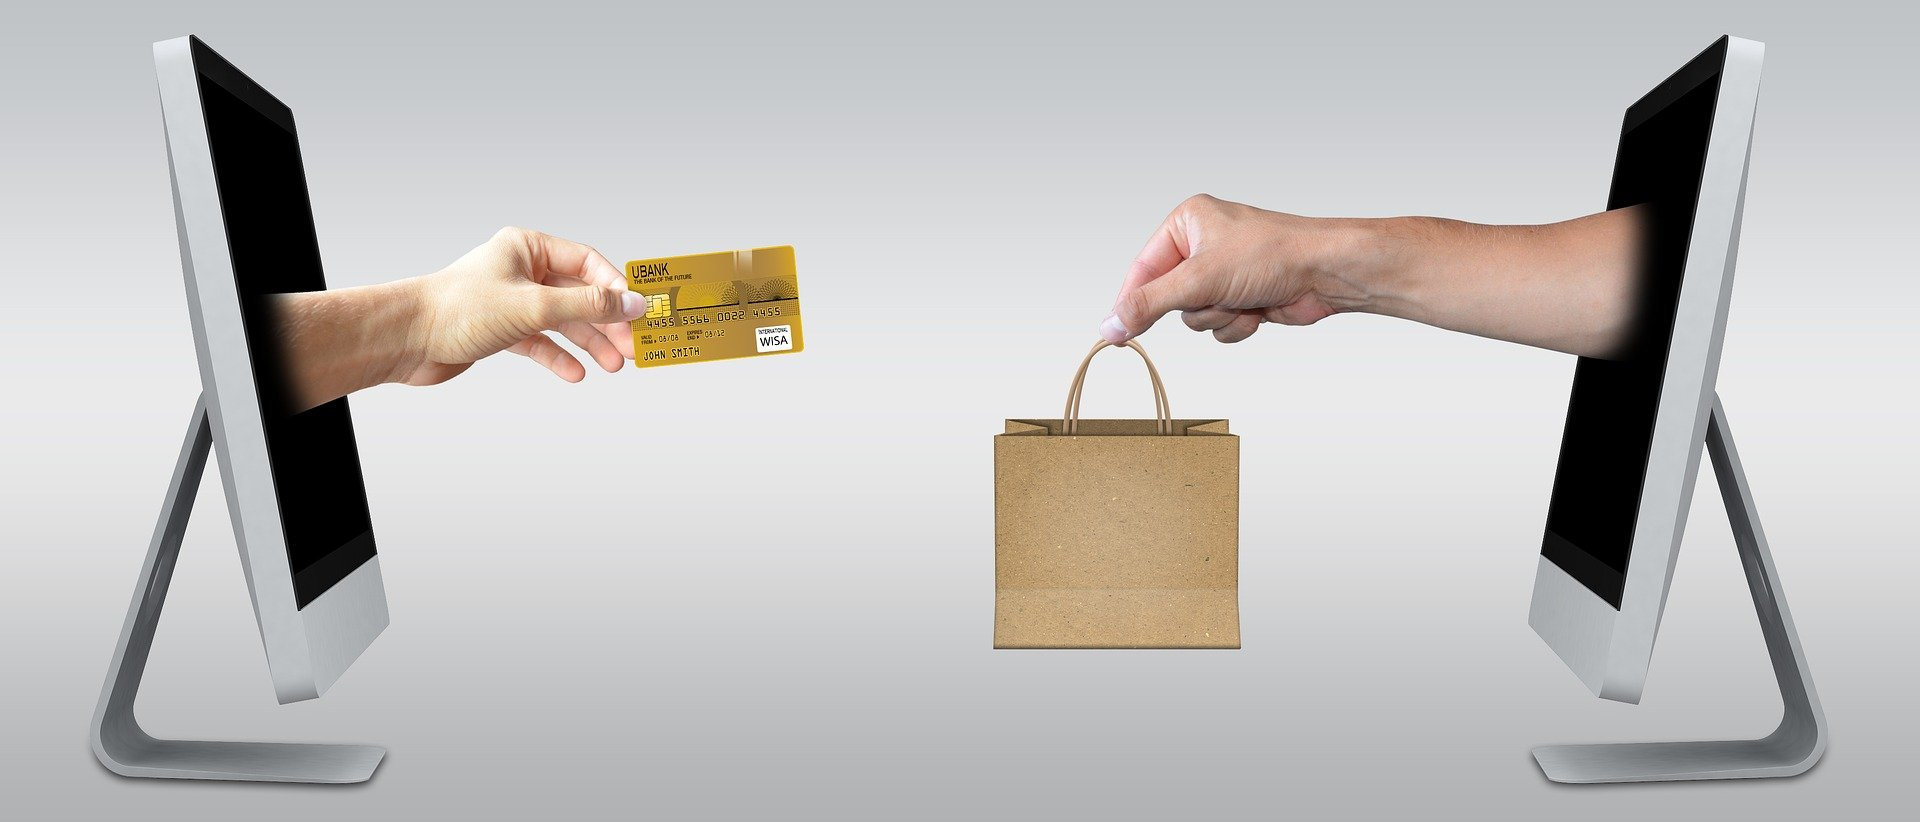 Within computer monitors, a transaction occurs with a credit card from one screen to a bag on another.